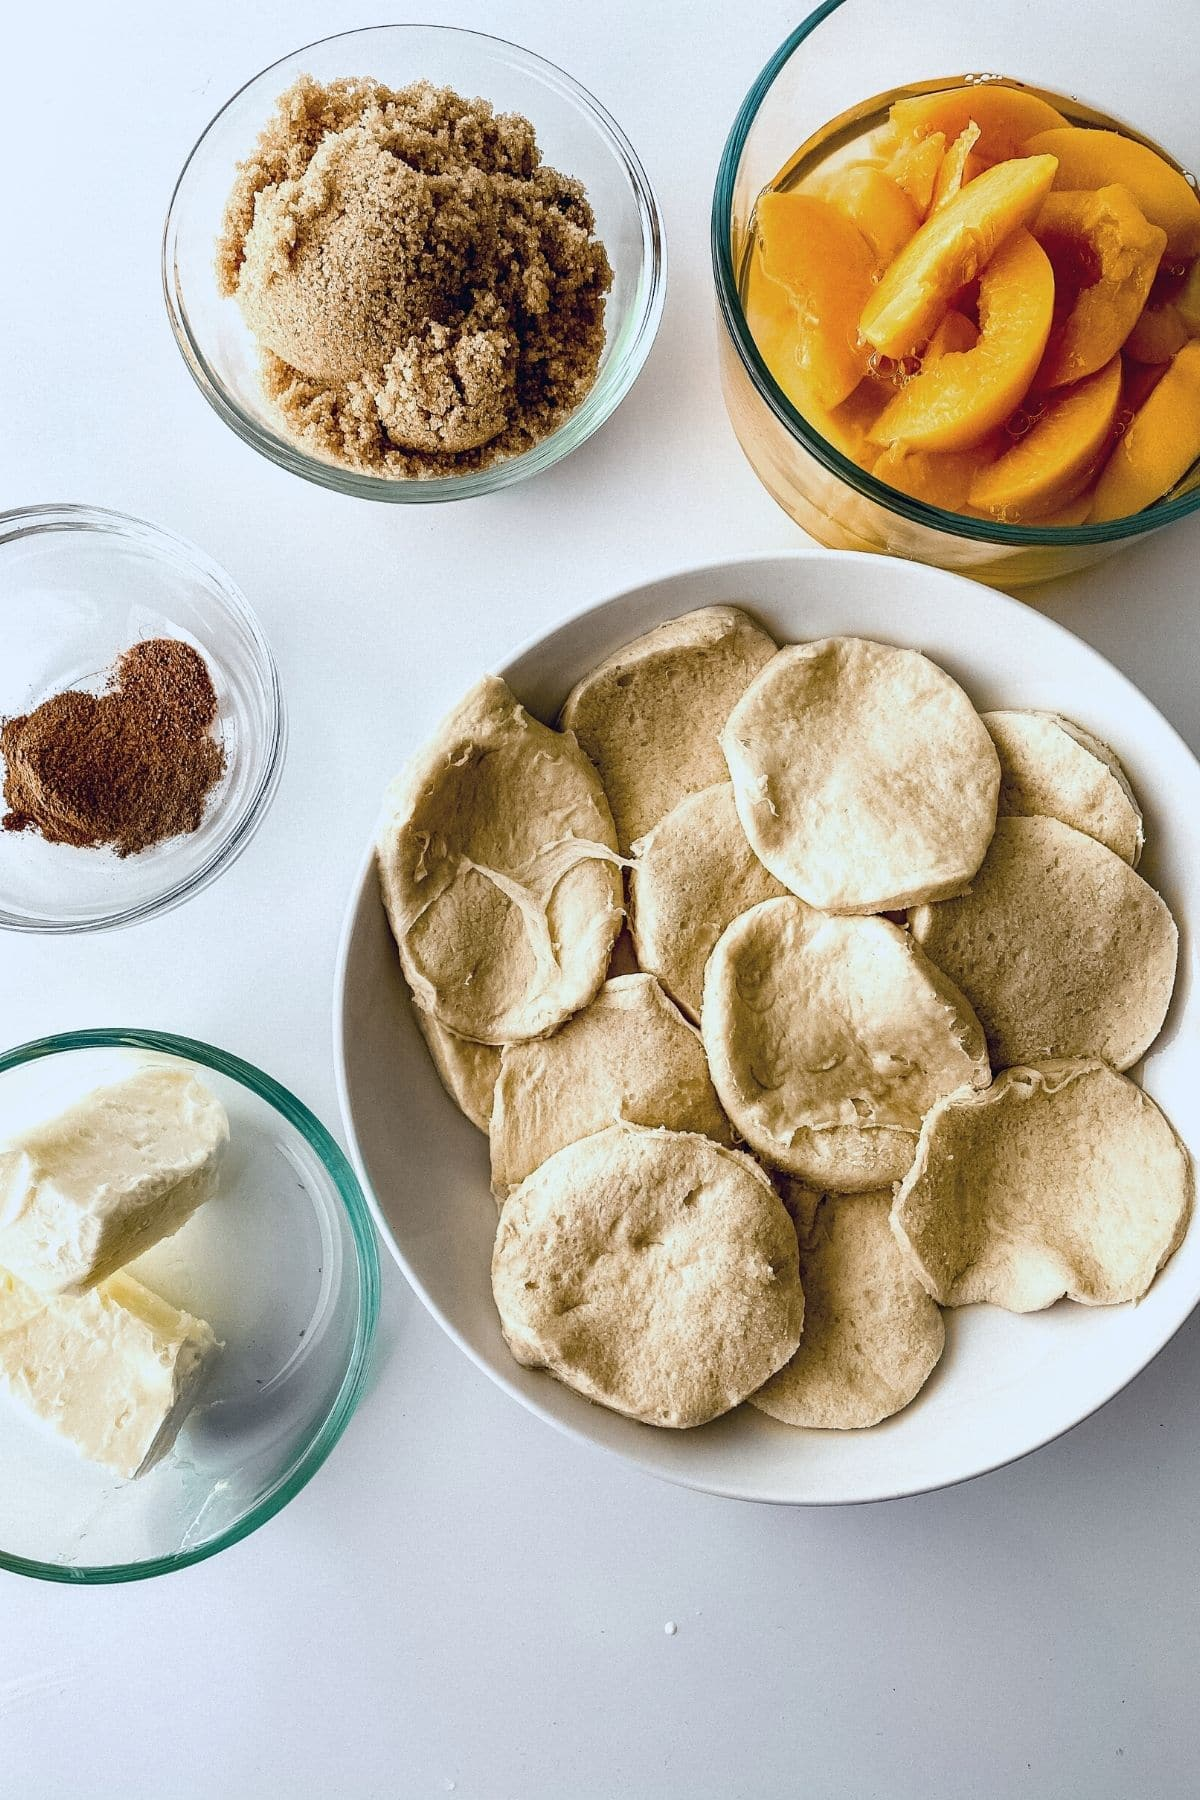 Ingredients for deep fried peach cobbler